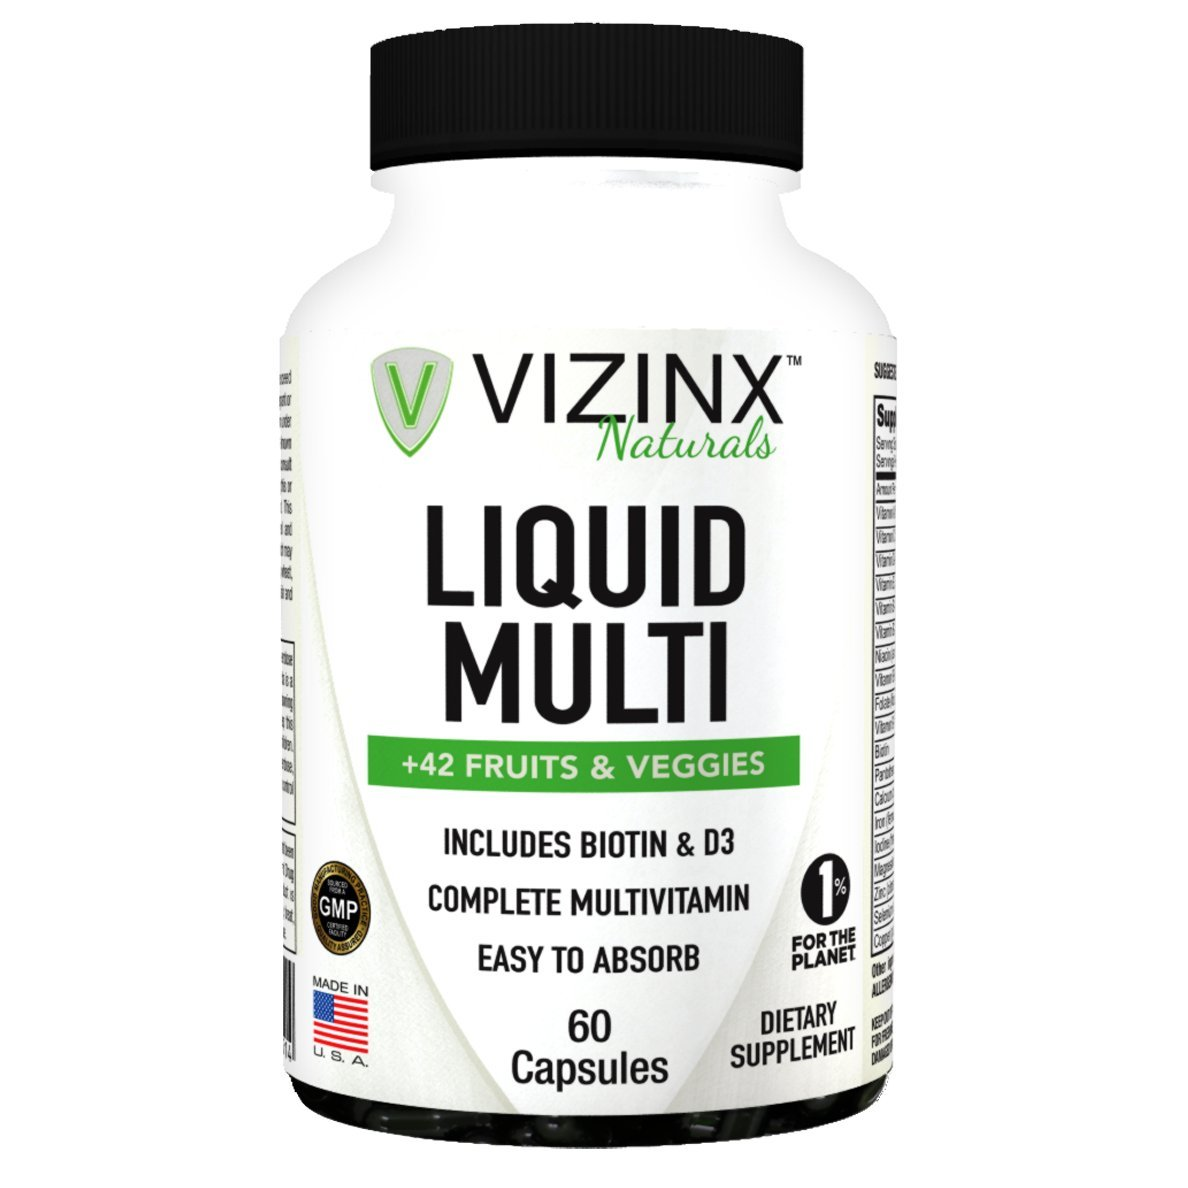 VIZINX Liquid Multi + 42 Fruits And Veggies Capsules 60 CT, is a complete liquid multivitamin that contains a blend of vitamins, minerals, vegetables, and fruits. Includes Biotin, Vitamin D3 & Iron. by VIZINX (Image #1)